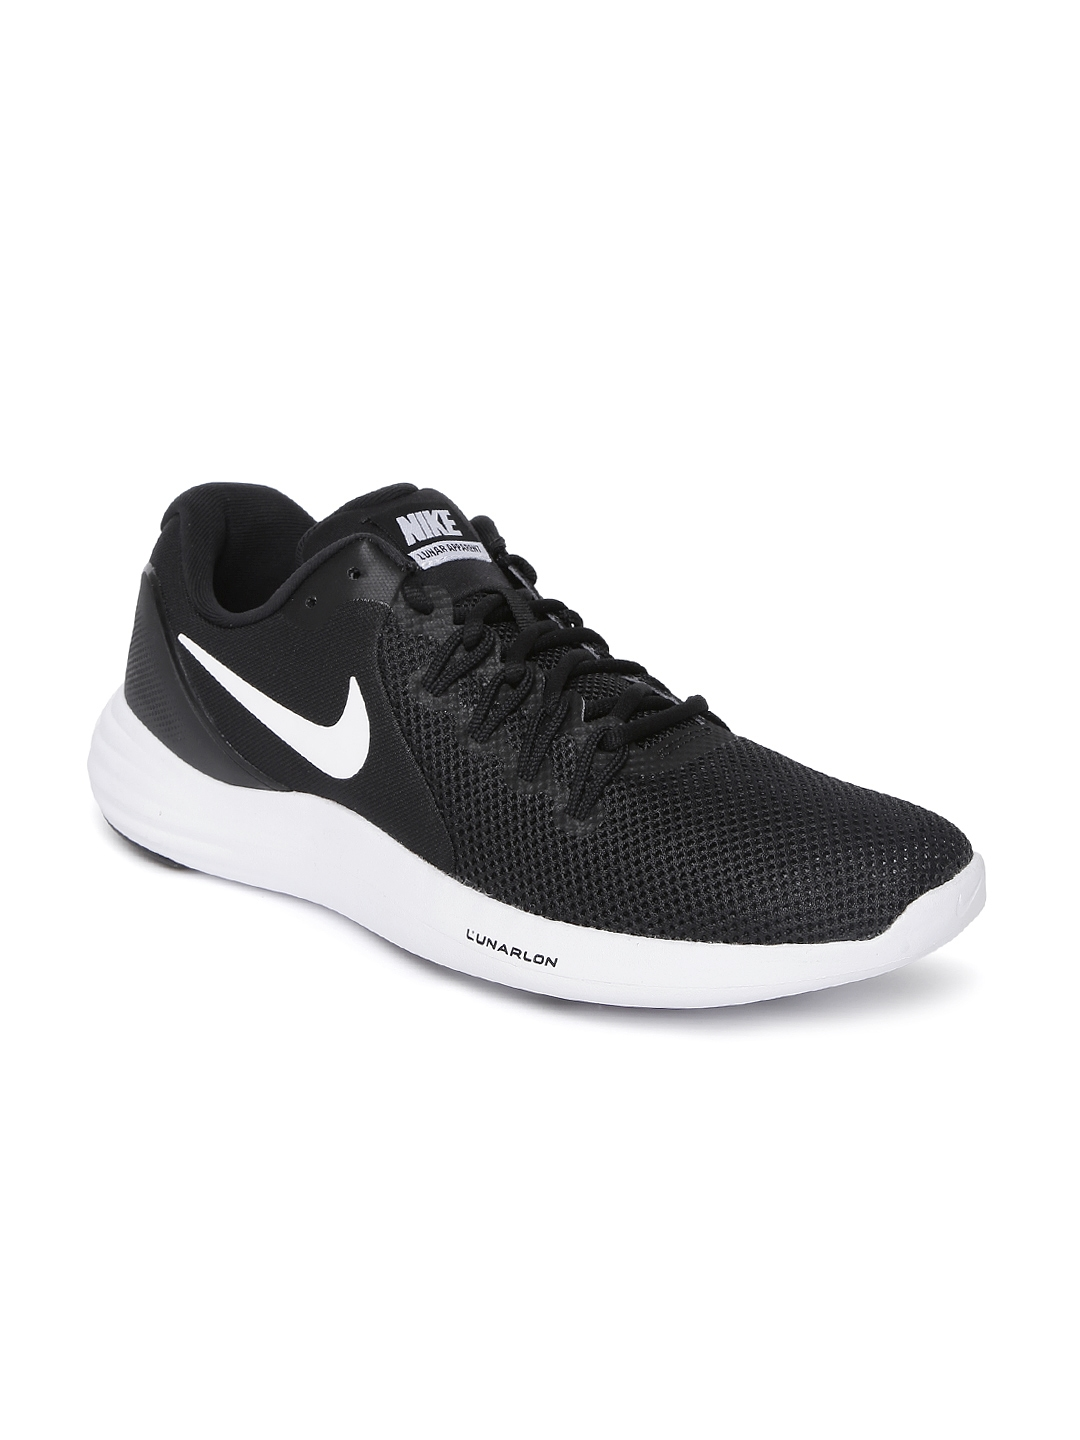 100% authentic aaa83 f65ac Nike Men Black LUNAR APPARENT Running Shoes